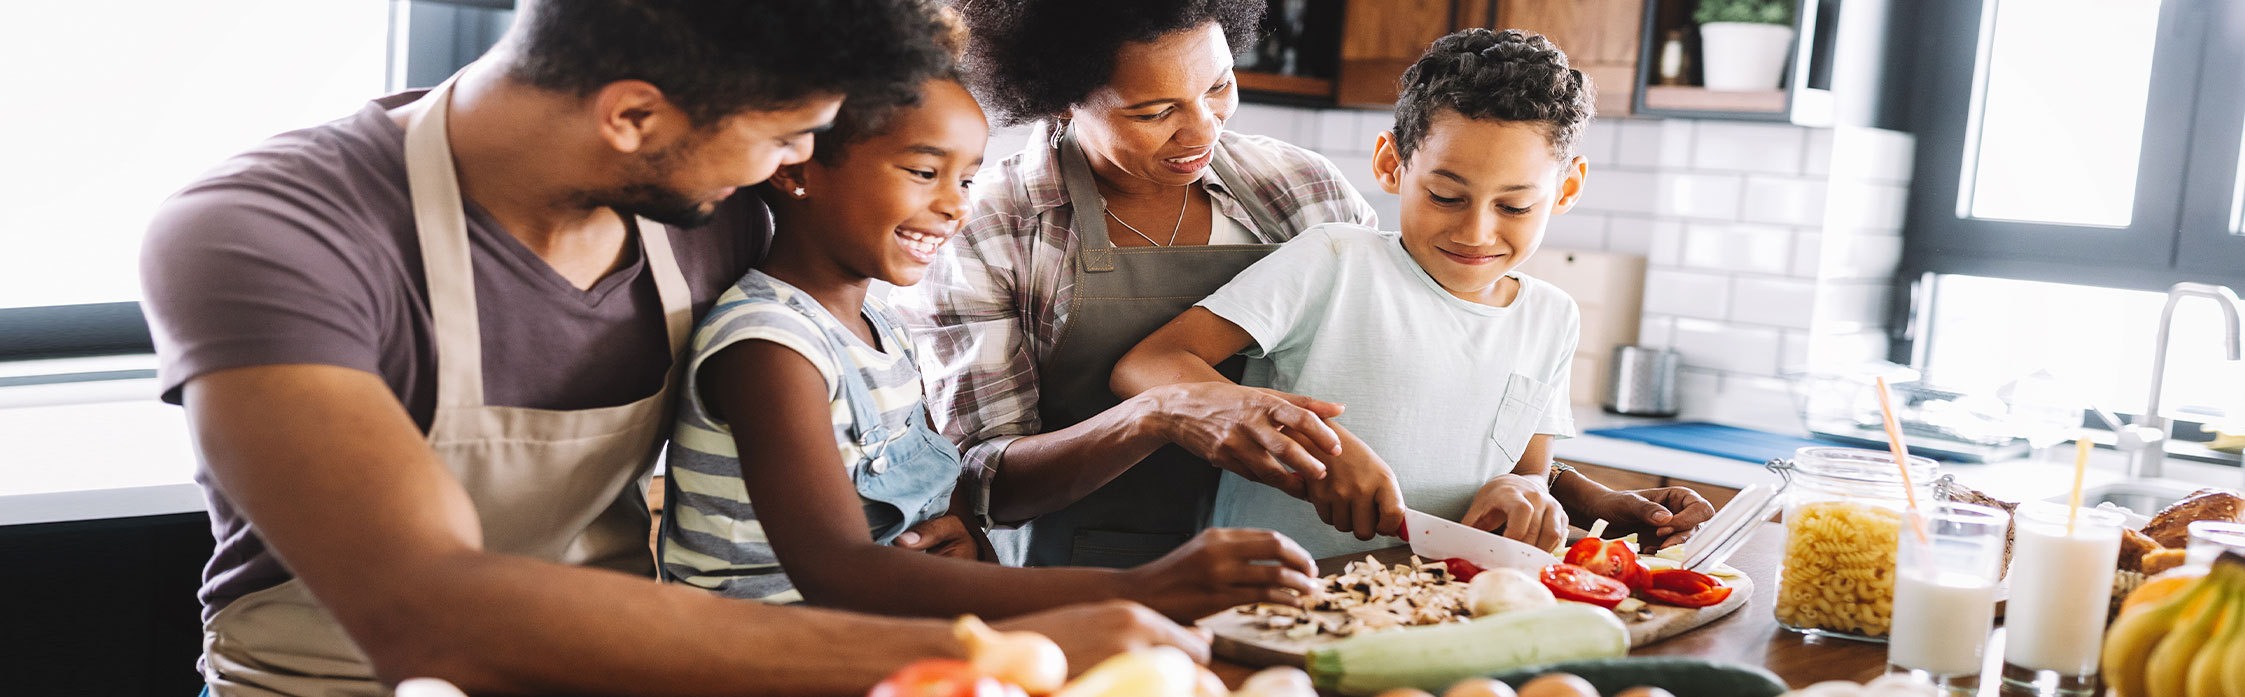 Image of family cooking in the kitchen